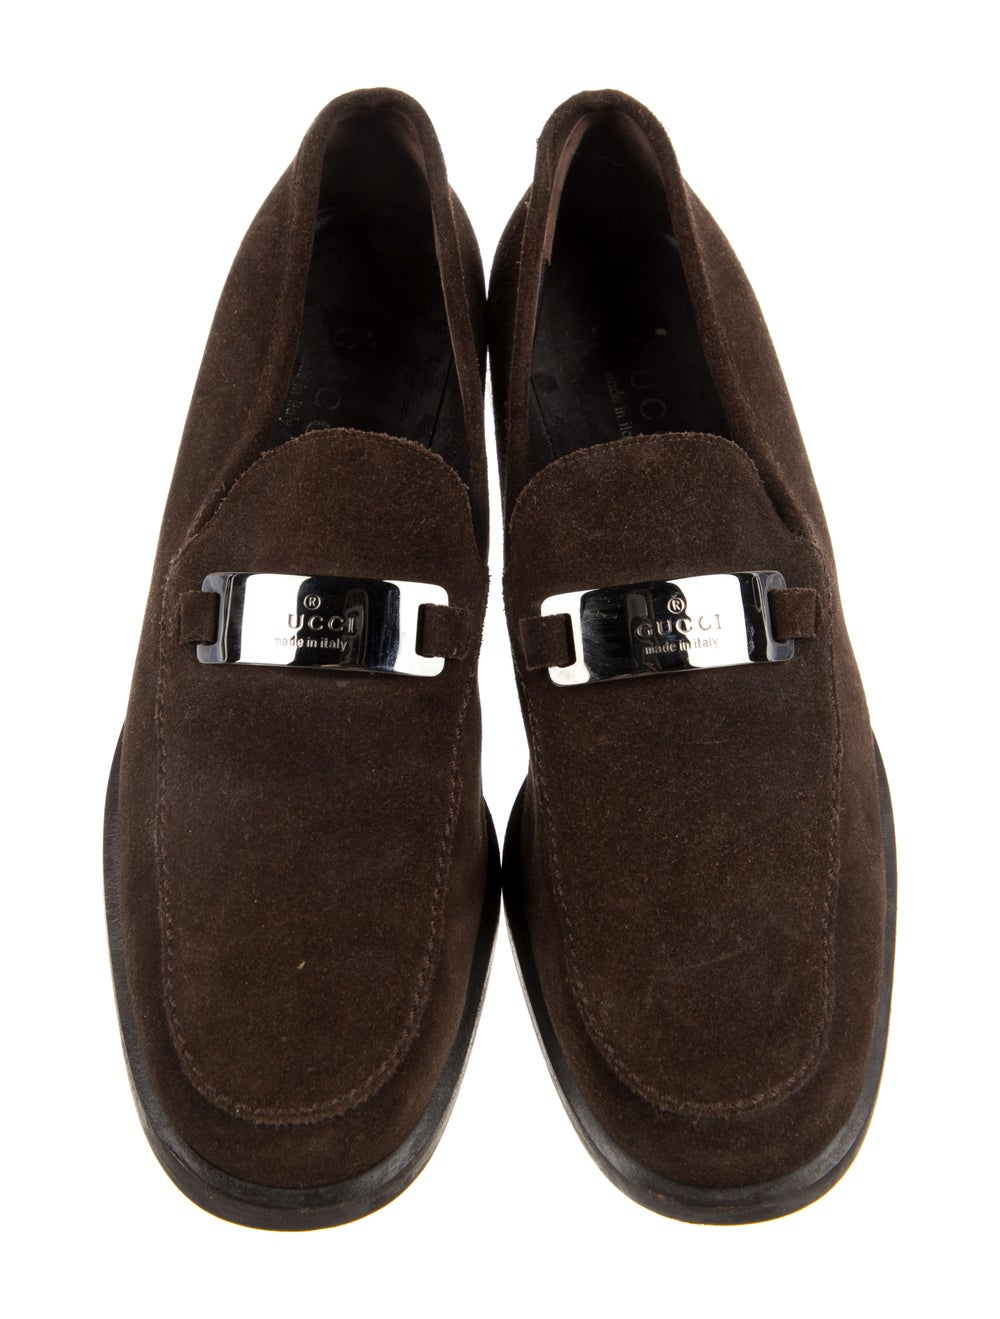 Gucci Suede Loafers Brown - image 3